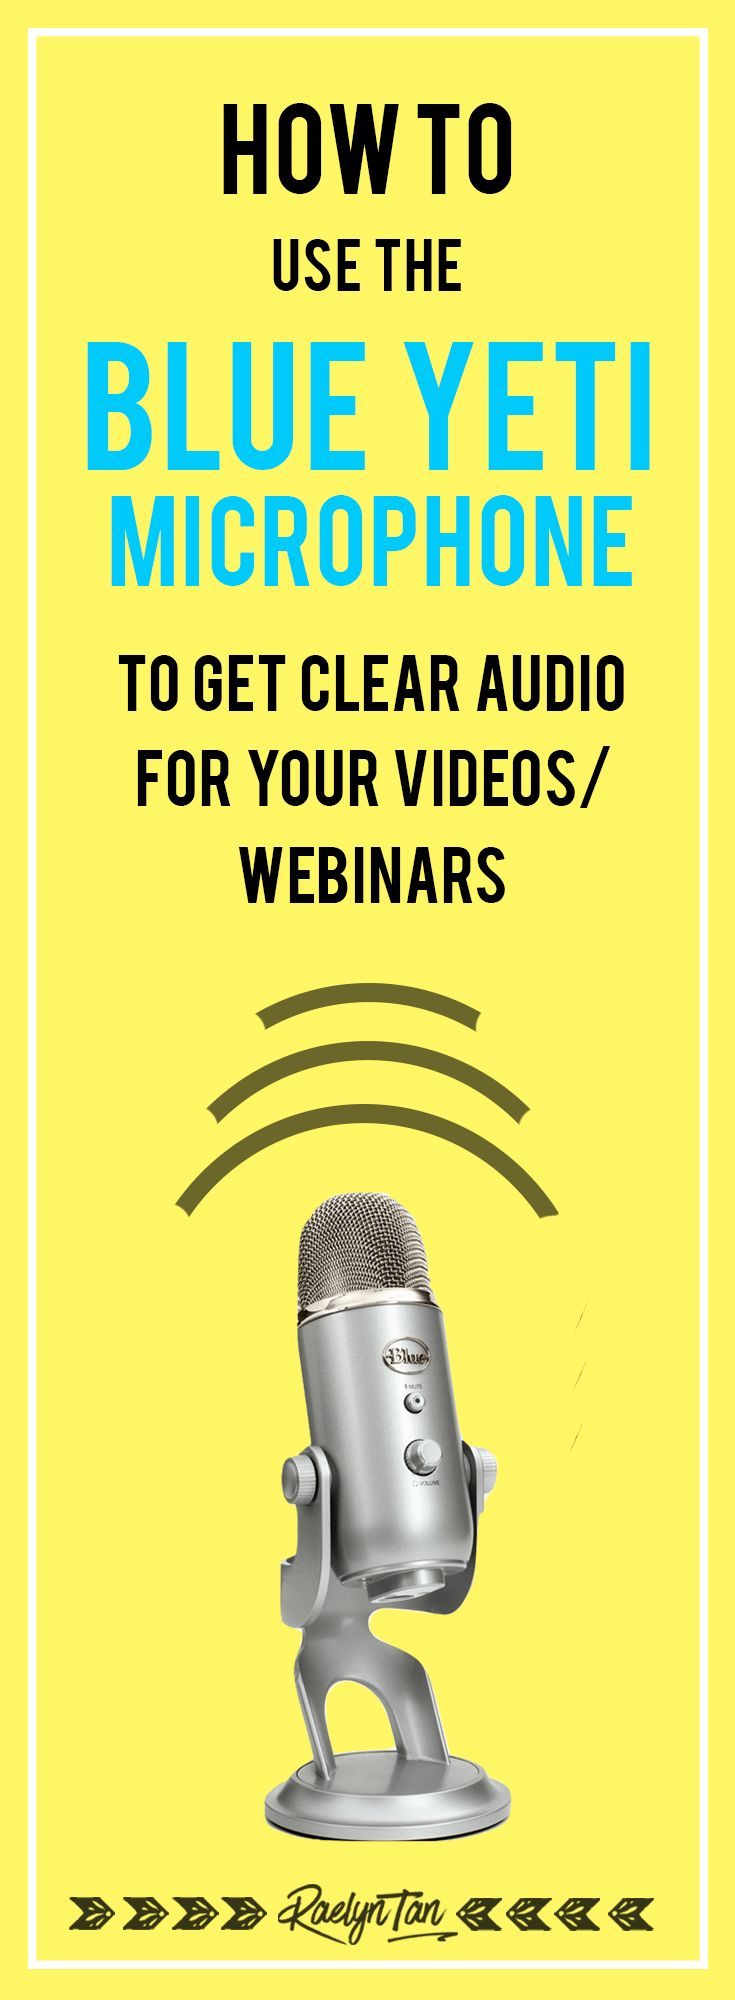 How to use the Blue Yeti Microphone to get clear audio for your videos and more. Comes in silver + black and plugs directly into your computer's USB port.